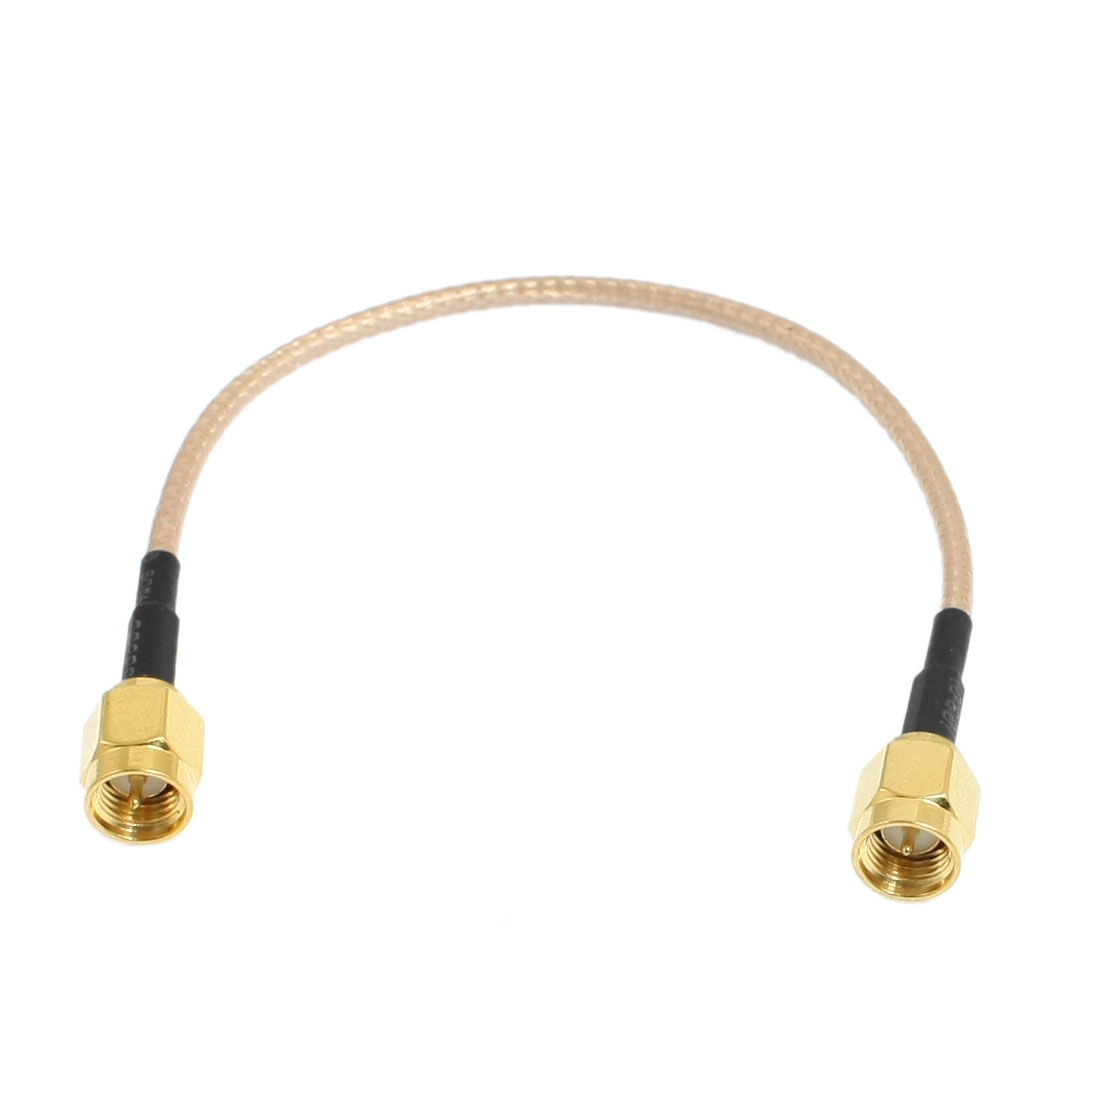 "6.5"" Length SMA Male to SMA Male Connector Pigtail Cable"